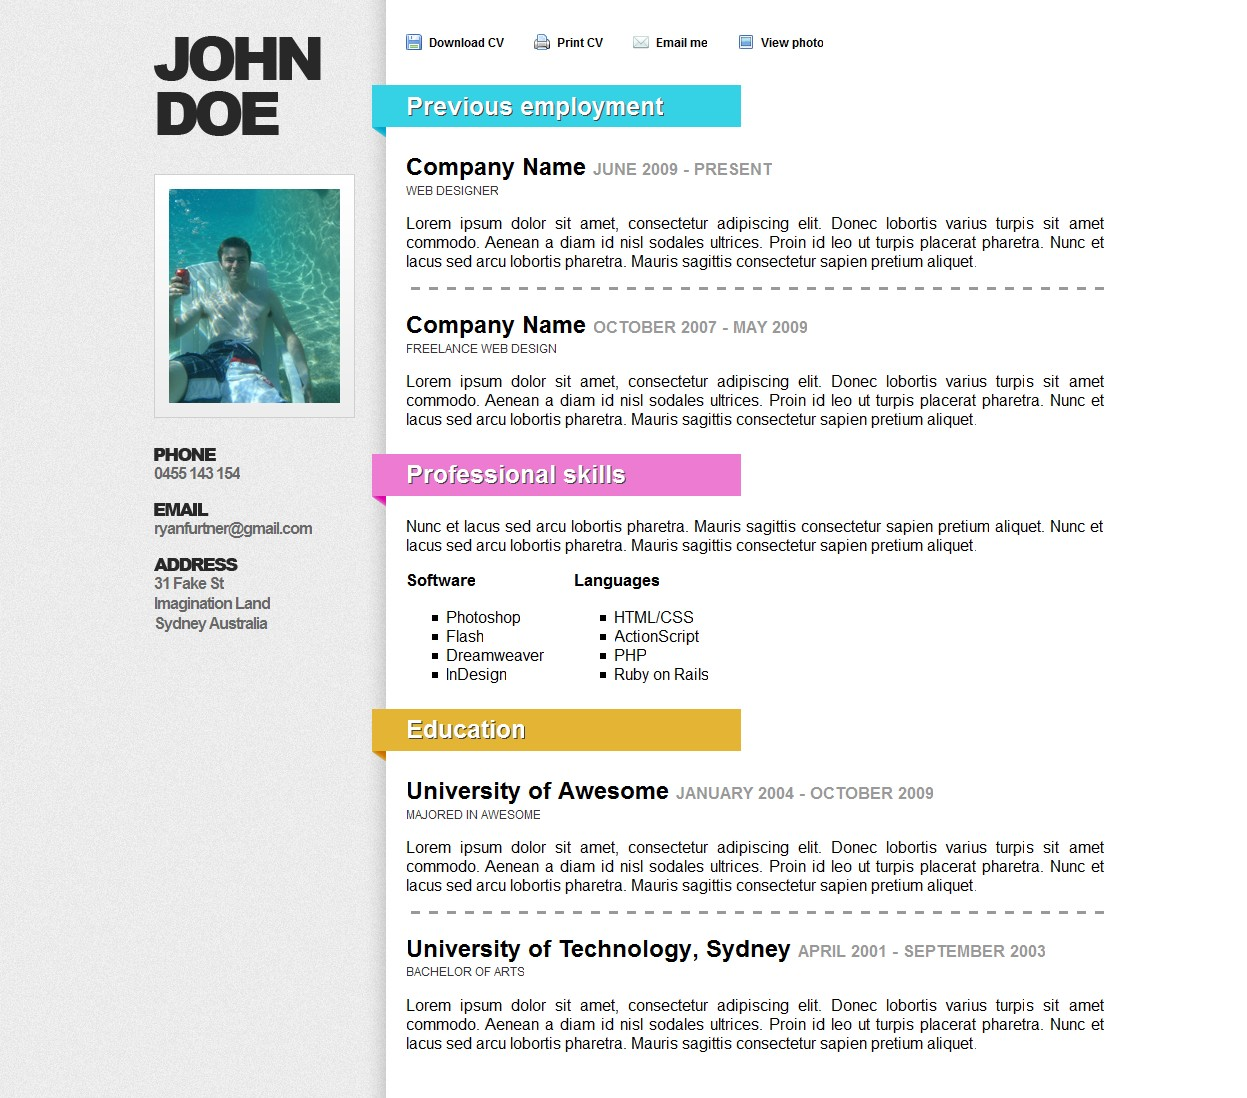 Awesome Online Resume/CV